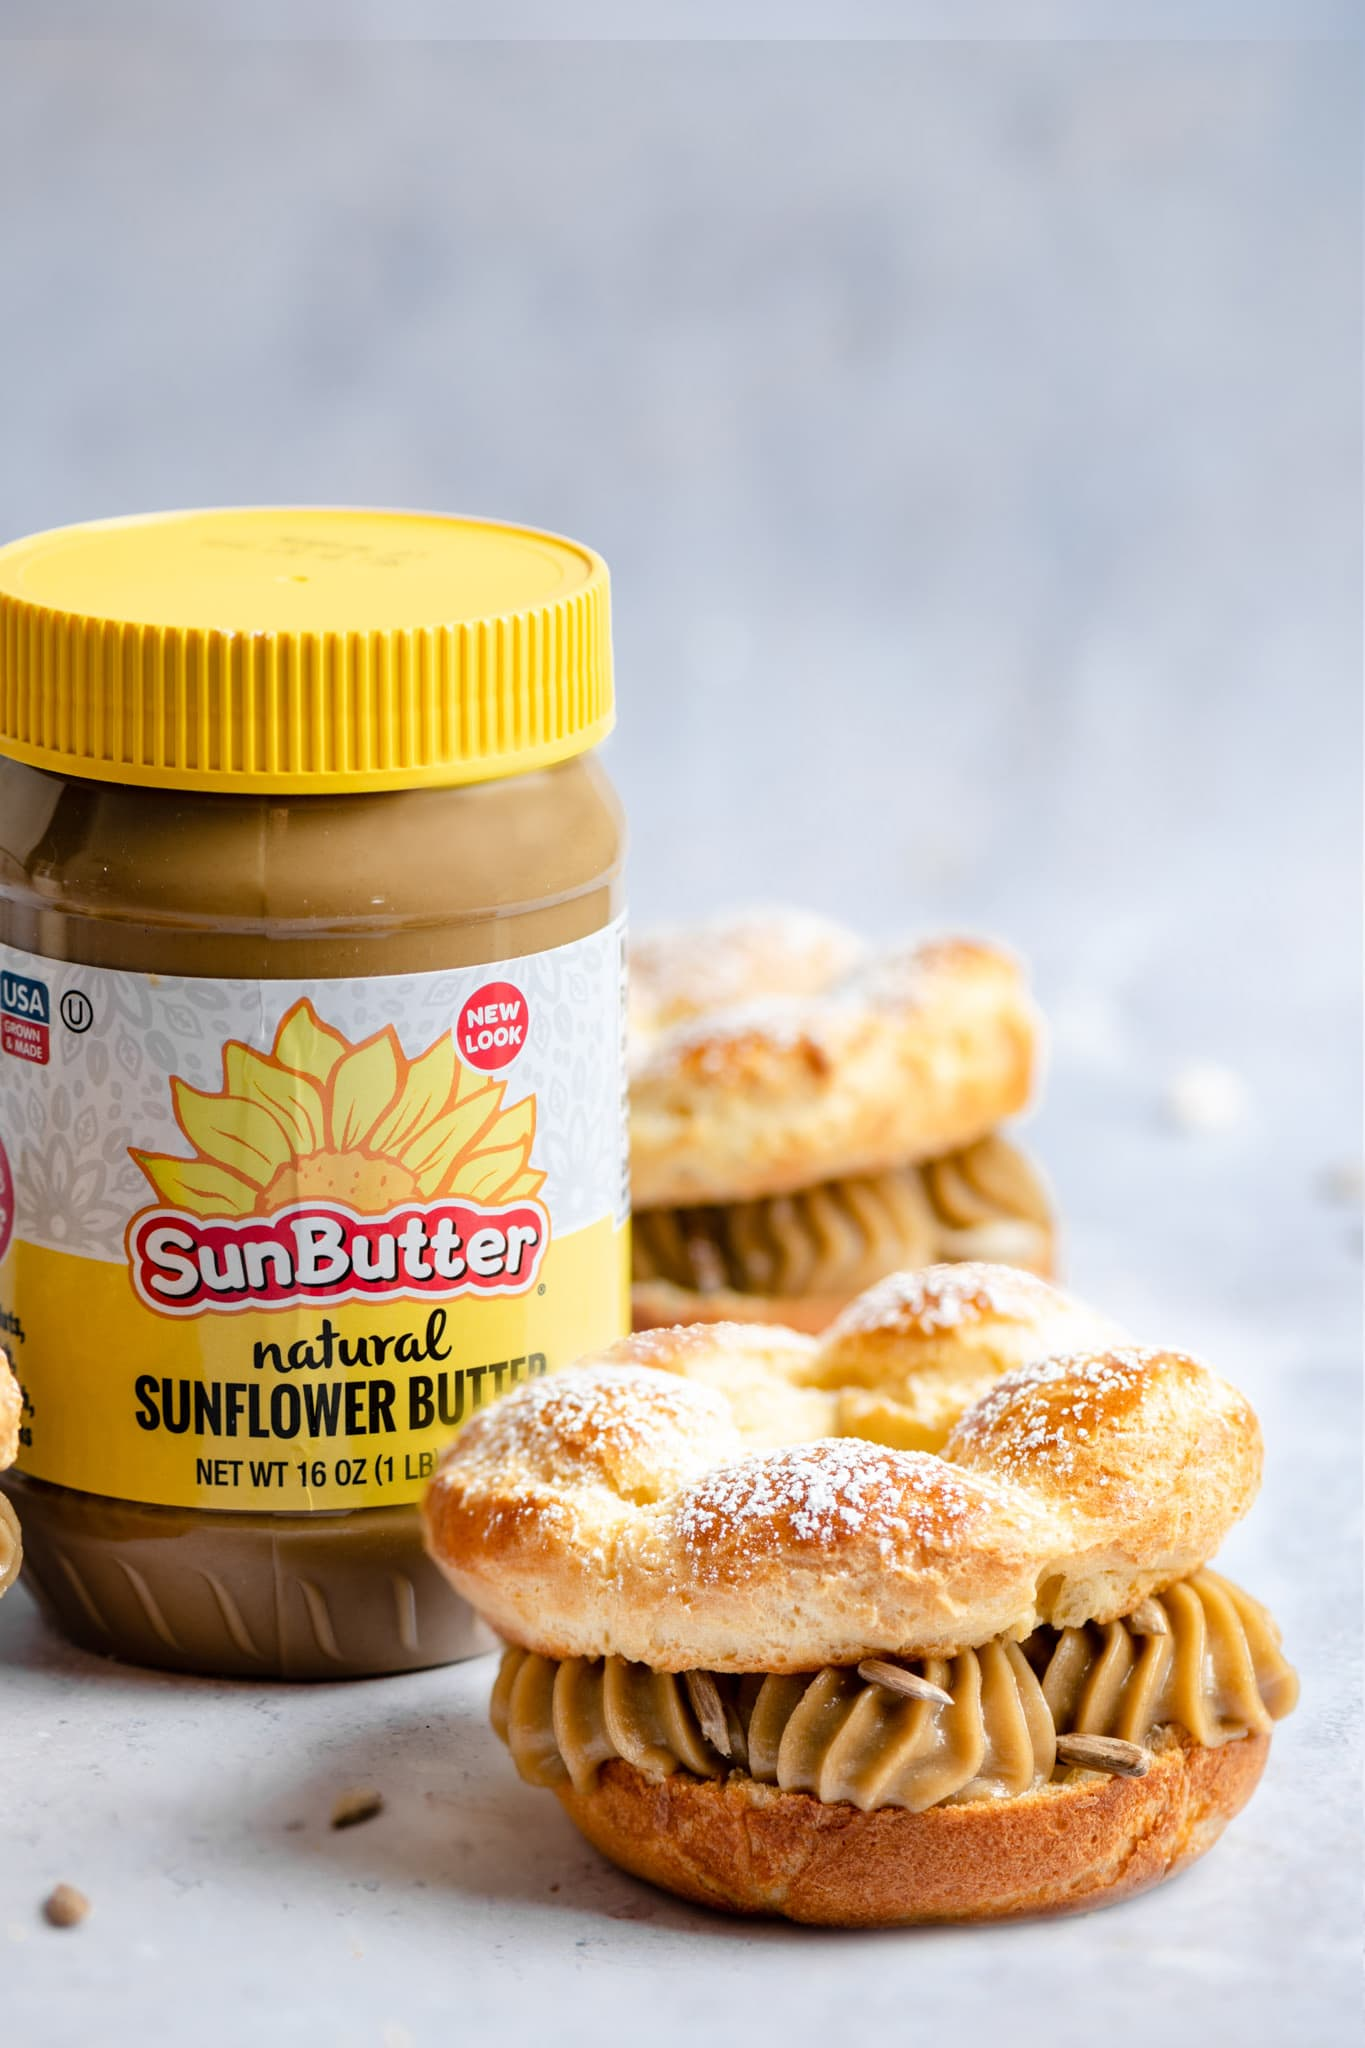 Sunflower Paris Brest Recette Recipe with SunButtet